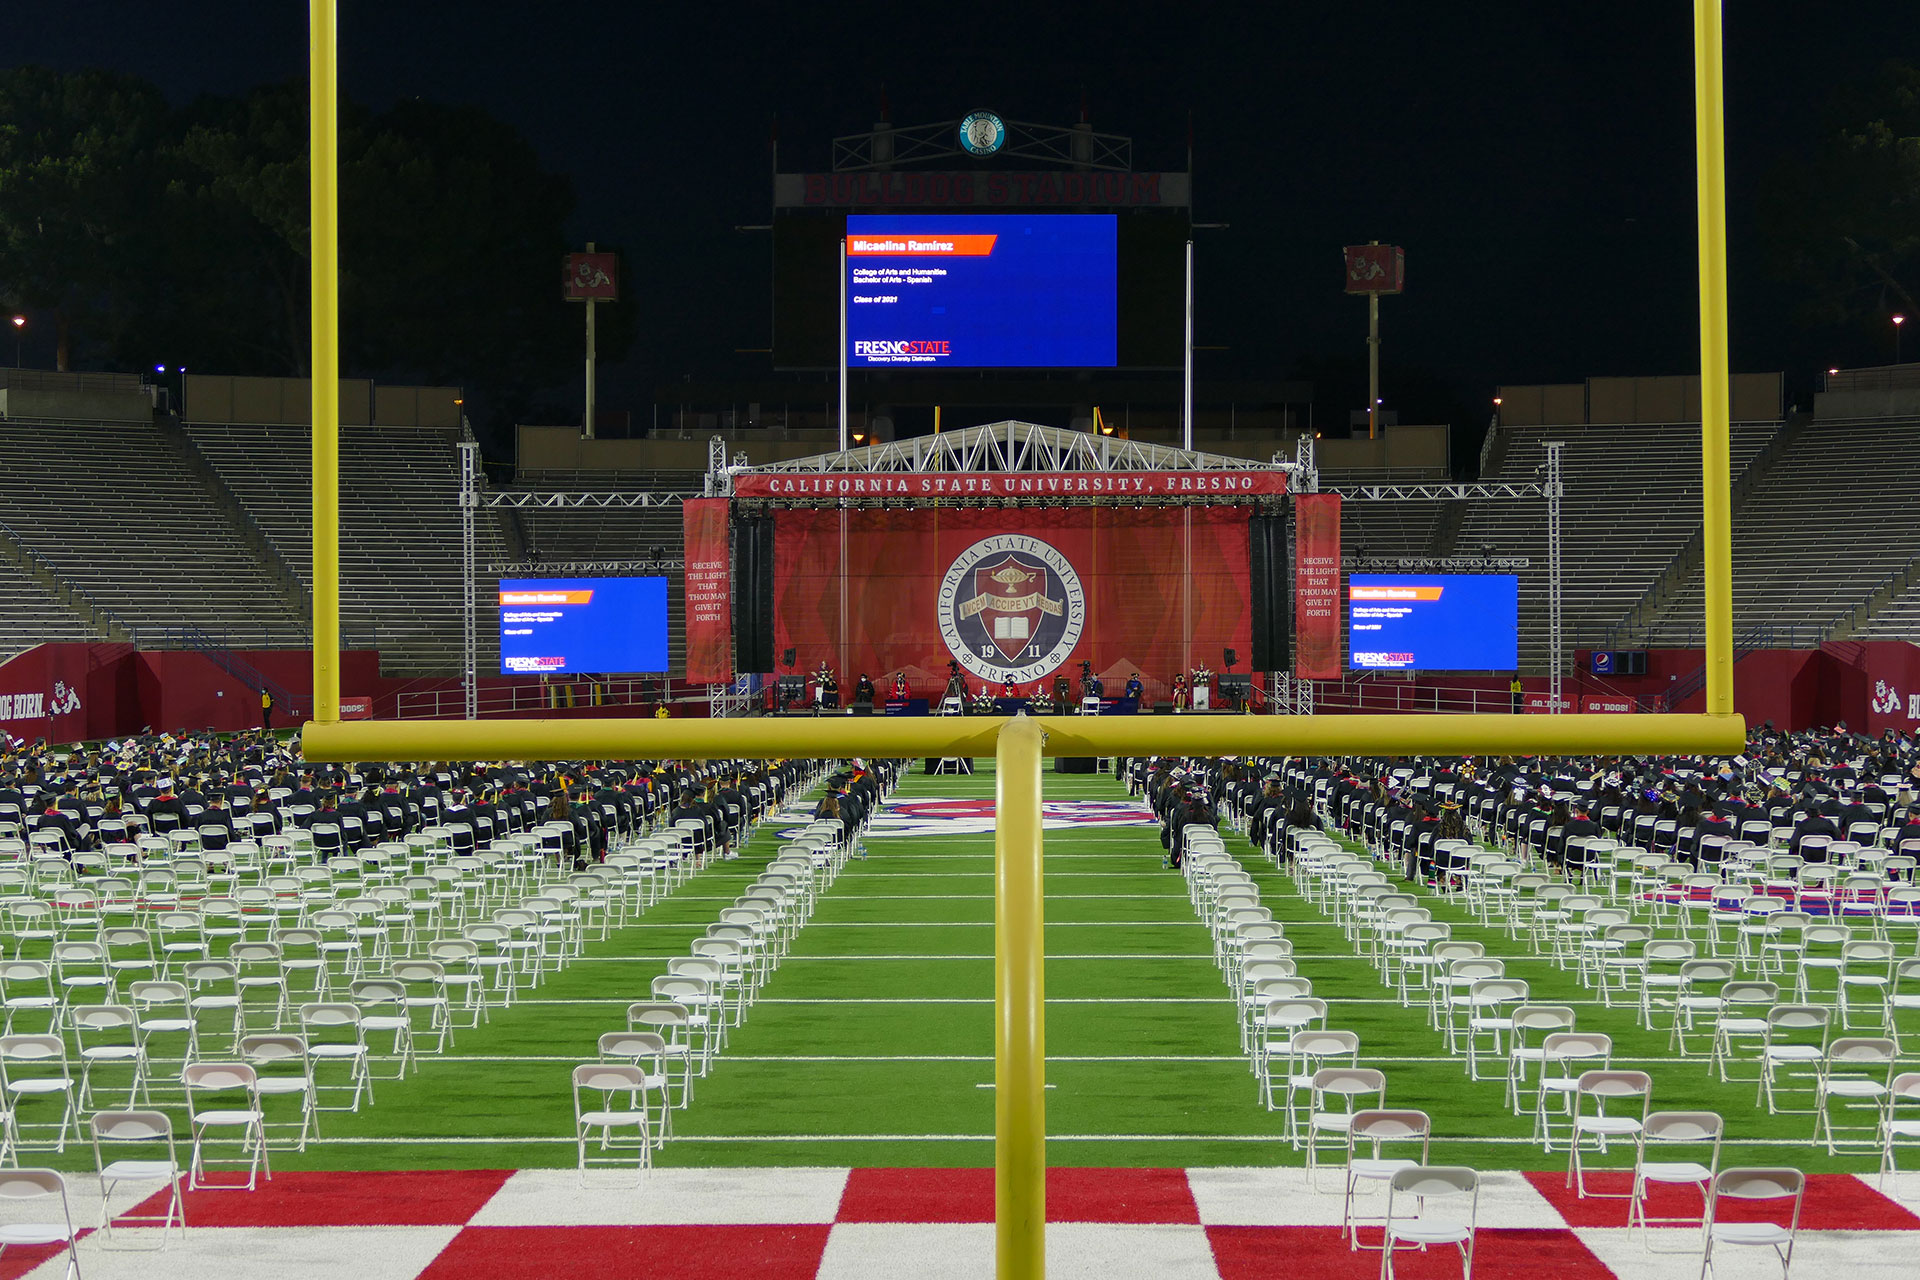 A view of the commencement ceremony through the football goal posts.